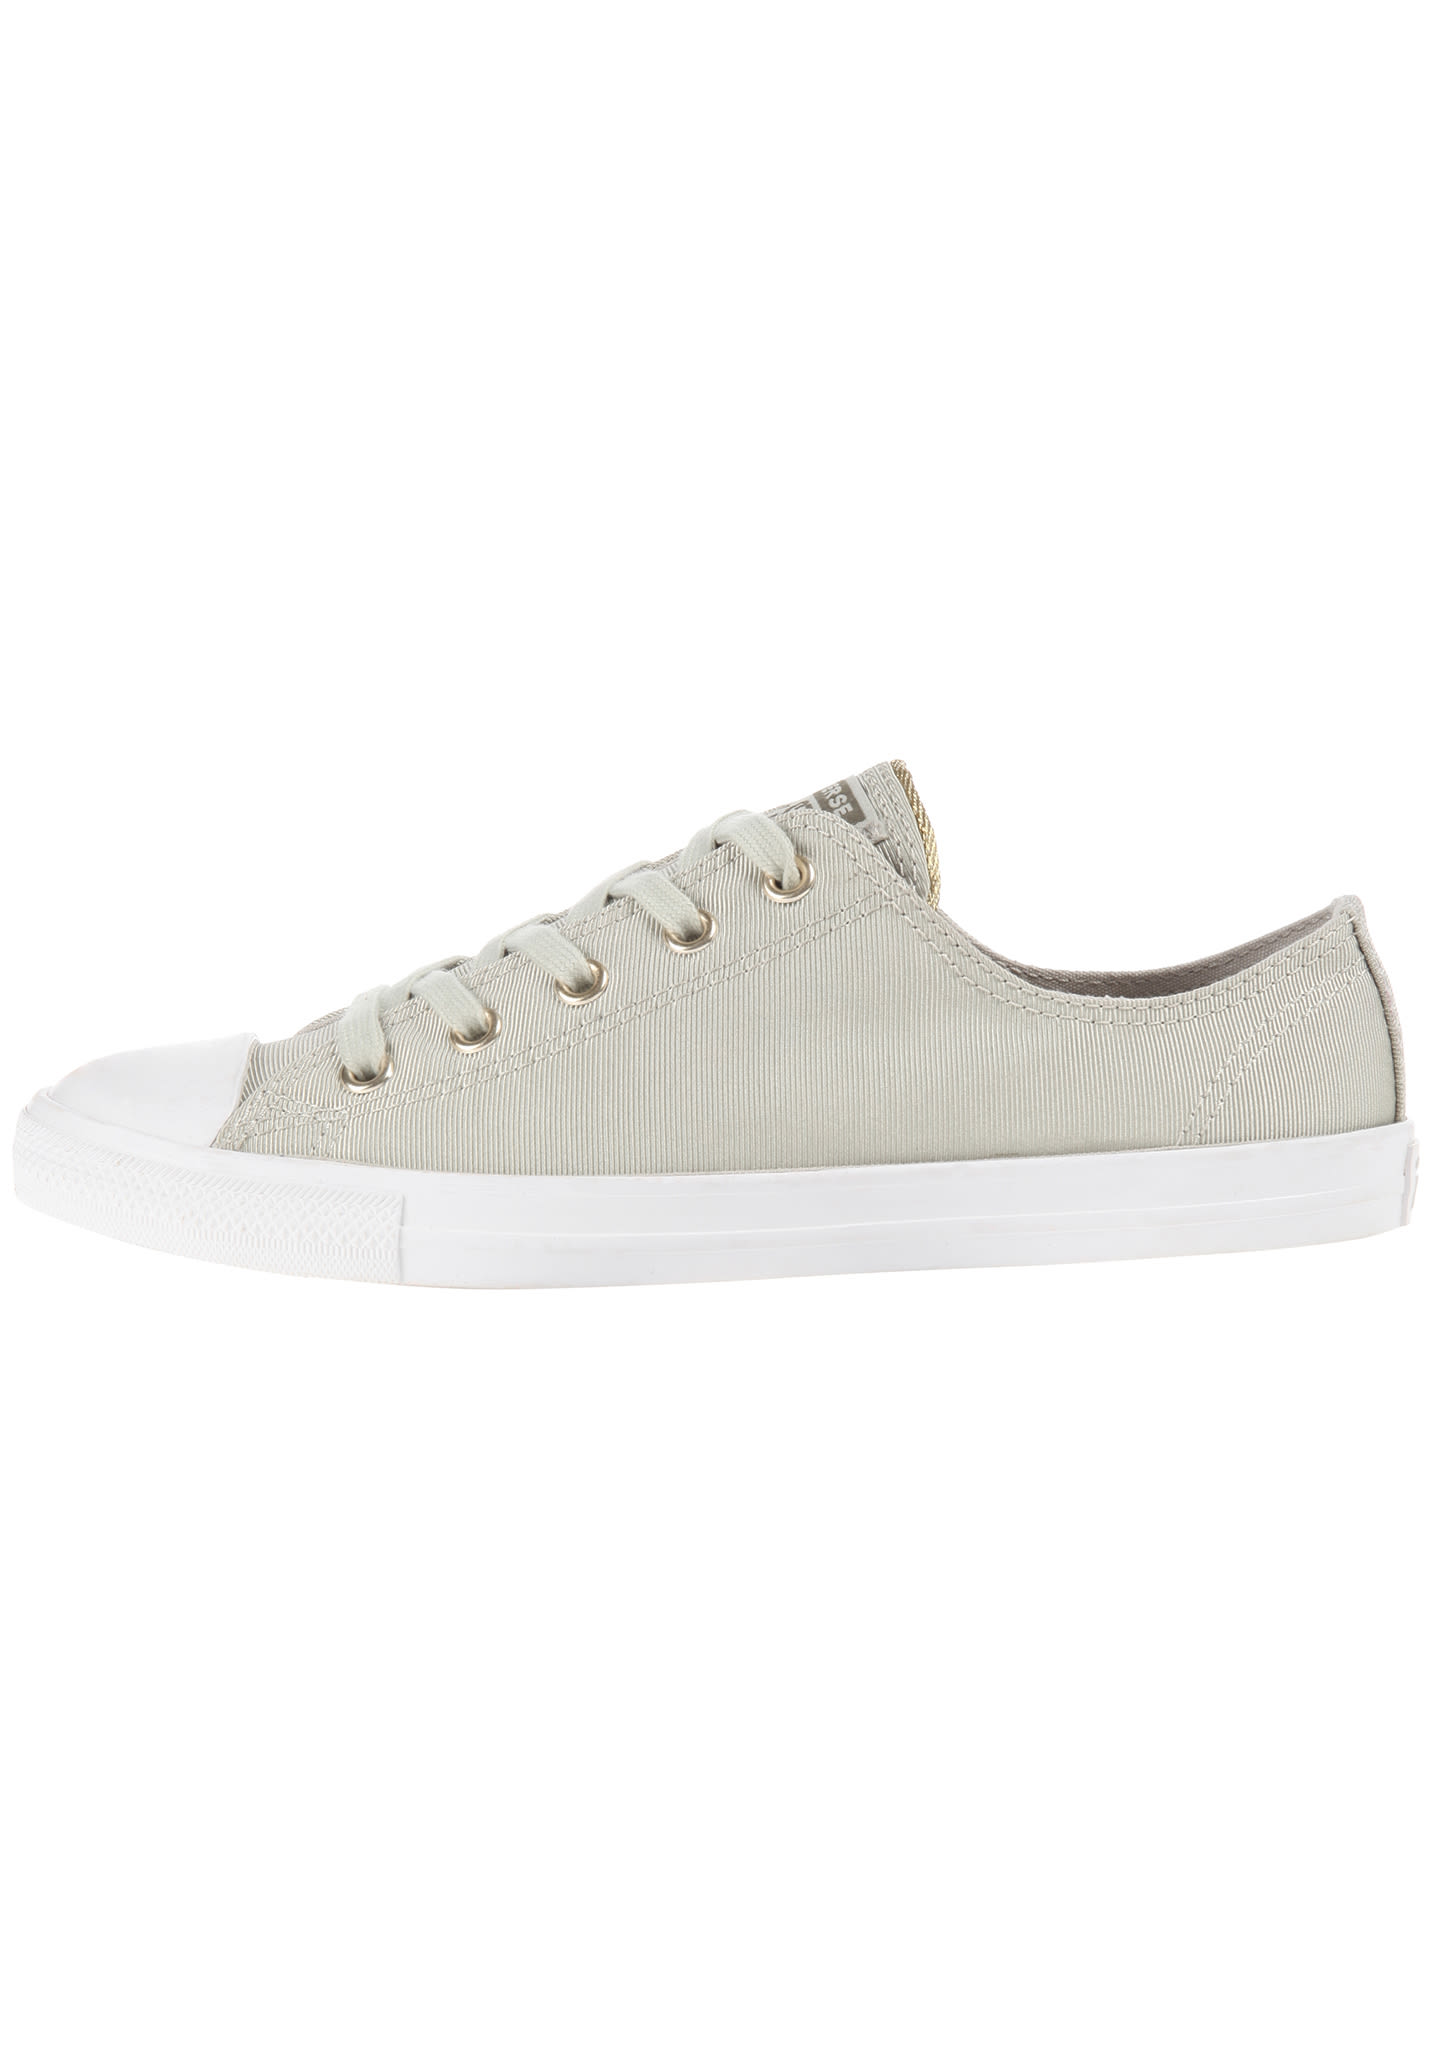 Converse Chuck Taylor All Star Dainty Ox Sneakers for Women Grey